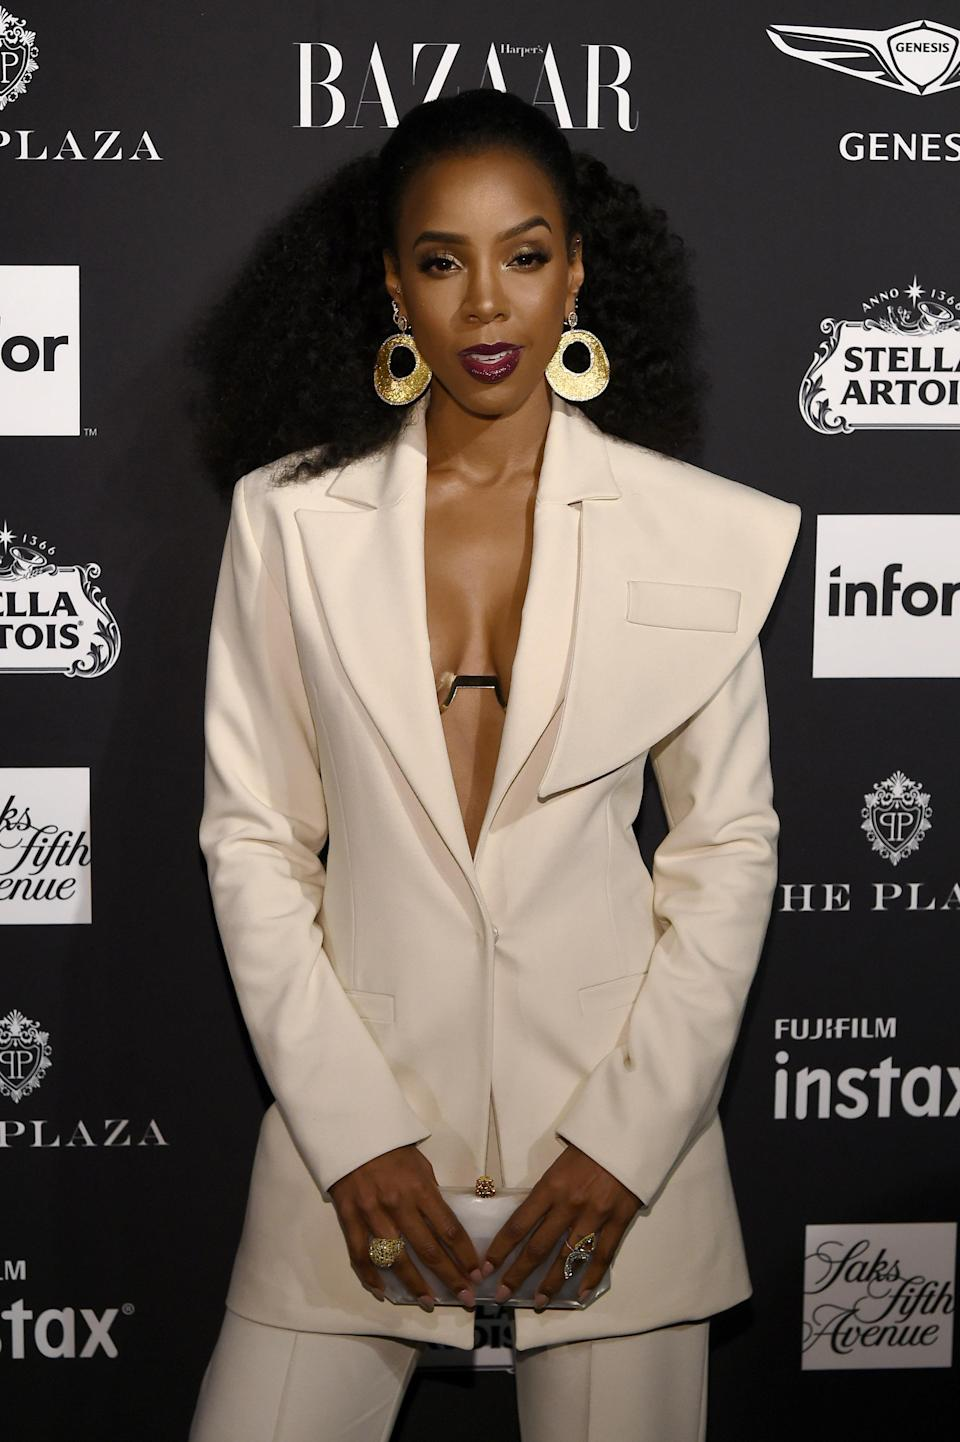 """<p>Singer Kelly Rowland revealed during an interview with <em><a rel=""""nofollow noopener"""" href=""""https://www.shape.com/"""" target=""""_blank"""" data-ylk=""""slk:Shape"""" class=""""link rapid-noclick-resp"""">Shape</a></em> that she wanted to have breast implants at the age of 18 but her mum (and Beyonce's mum) wanted her to really think about it first. """"I took their advice and waited 10 years,"""" she said. """"Once I felt ready, I tried on padded bras and walked around in them to see how it would feel. You have to know what you're getting – no matter what type of surgery it is."""" <em>[Photo: Getty]</em> </p>"""